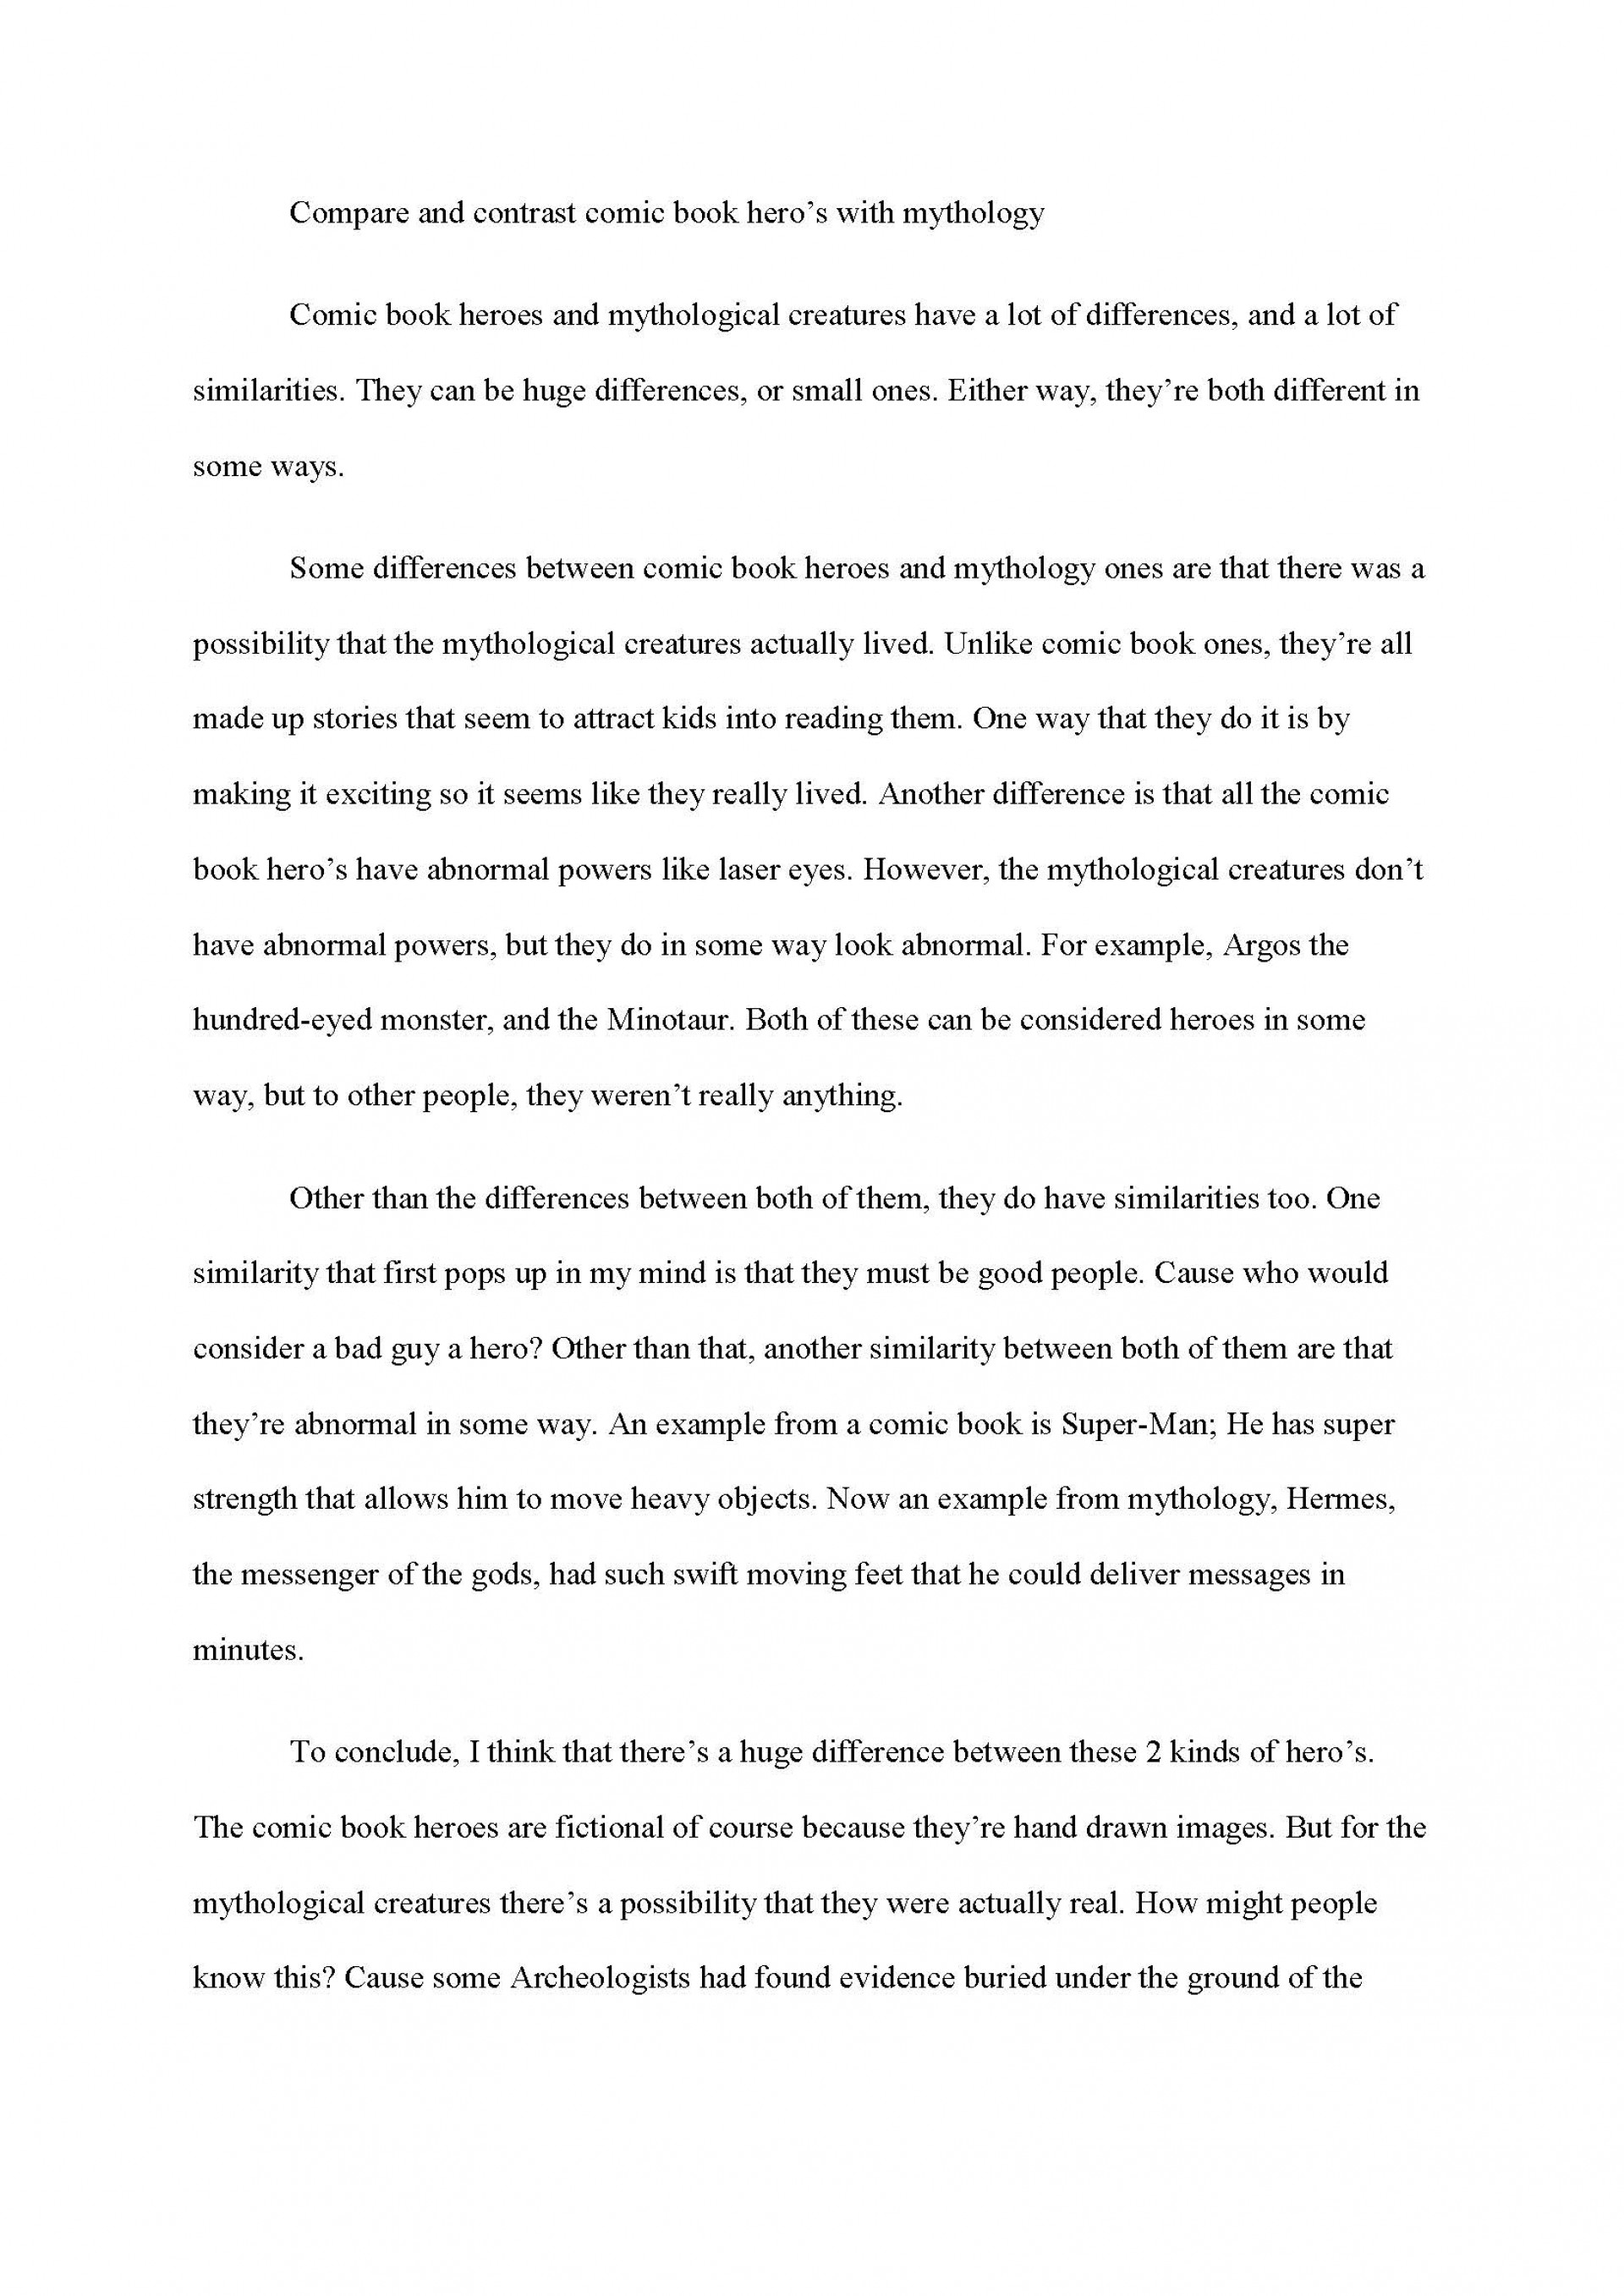 014 Essay Example Compared Contrast Sample How To Start Of Breathtaking An Argumentative About Yourself For Scholarship Analysis On A Book 1920